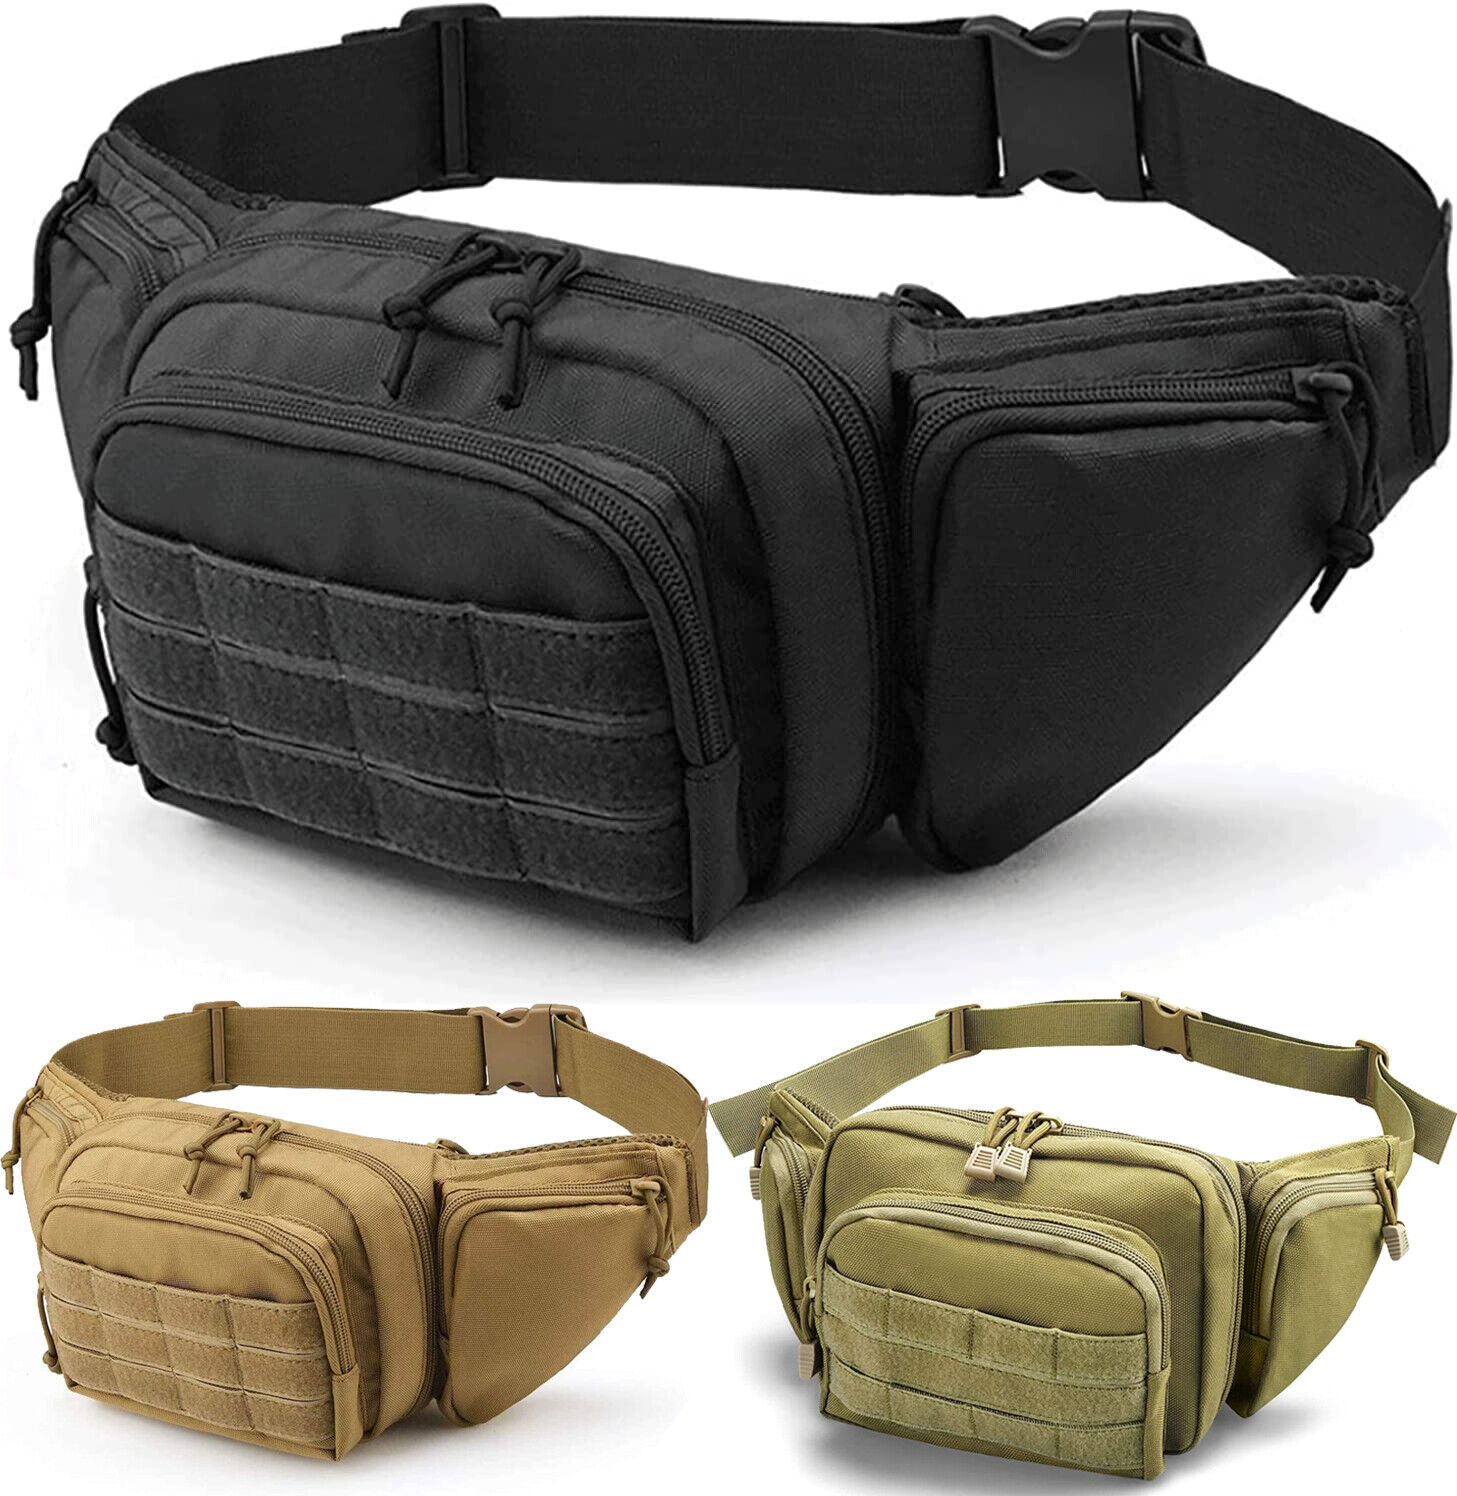 Concealed Carry Fanny Pack Holster Tactical Pistol Waist Pack Bag Gun Holster US Holsters